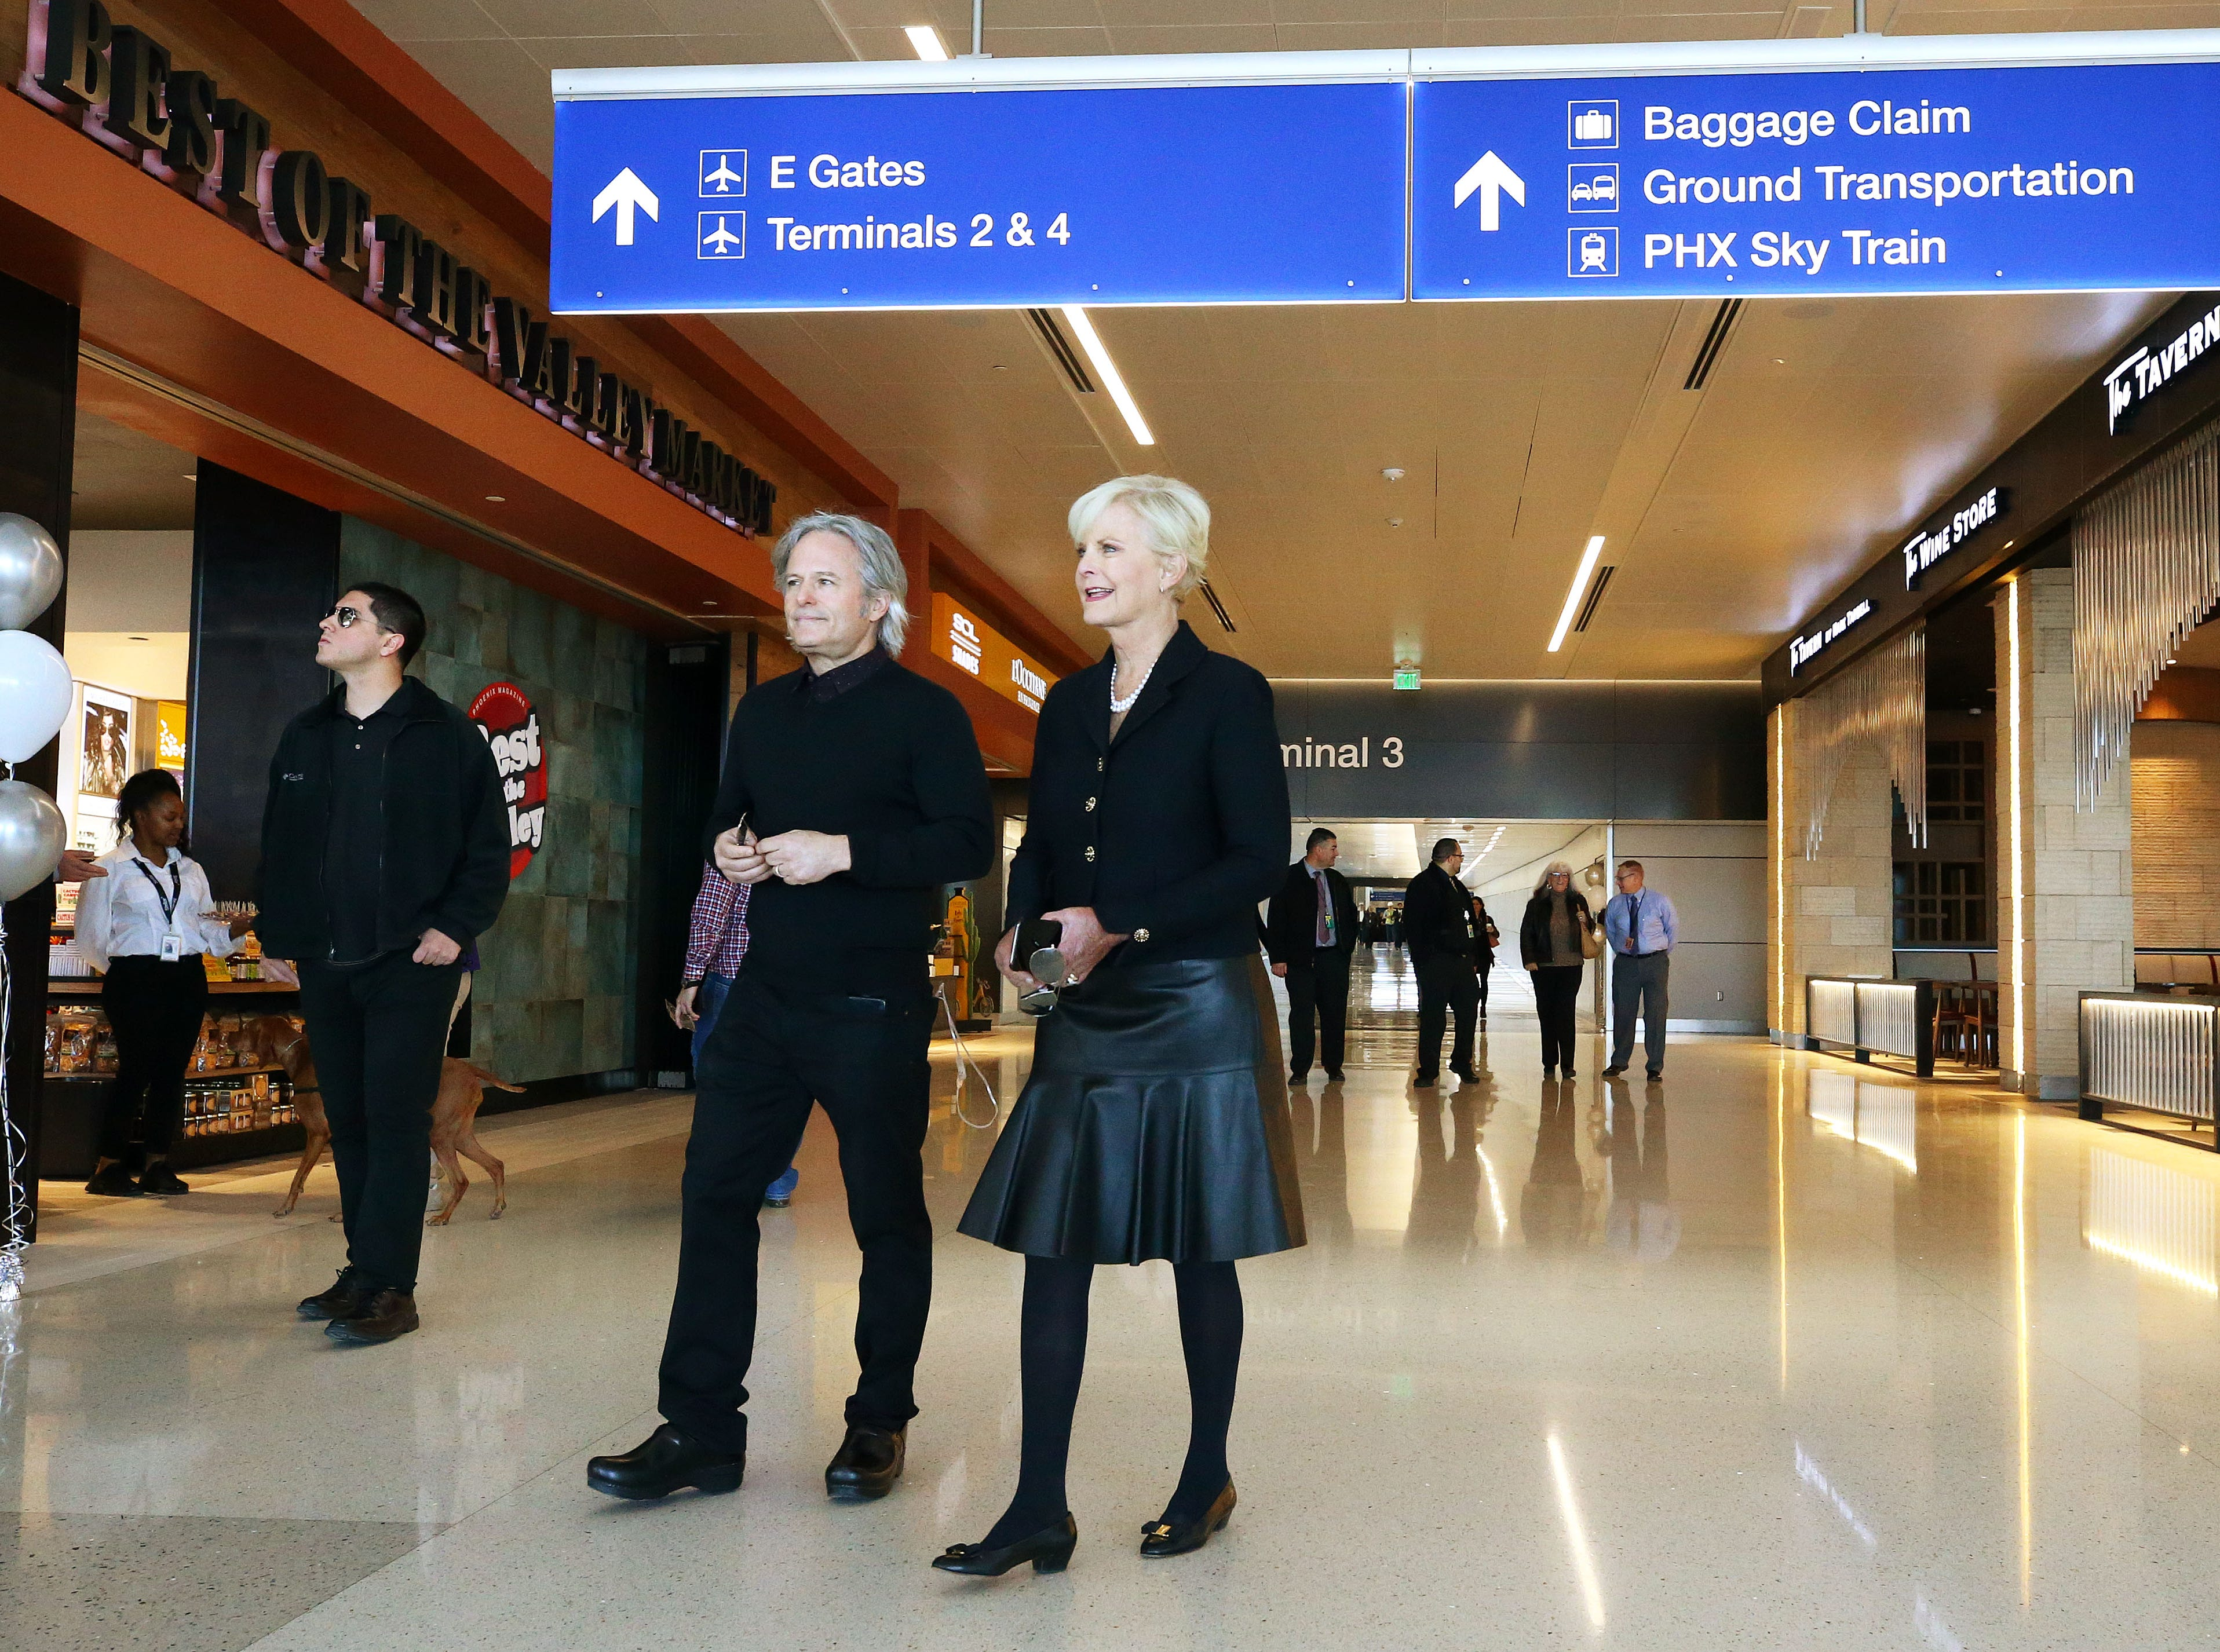 Chef Mark Tarbell and Cindy McCain visit the new John S. McCain III Terminal 3, South Concourse during opening ceremonies on Monday, Jan. 7, 2019 at Phoenix Sky Harbor International Airport.